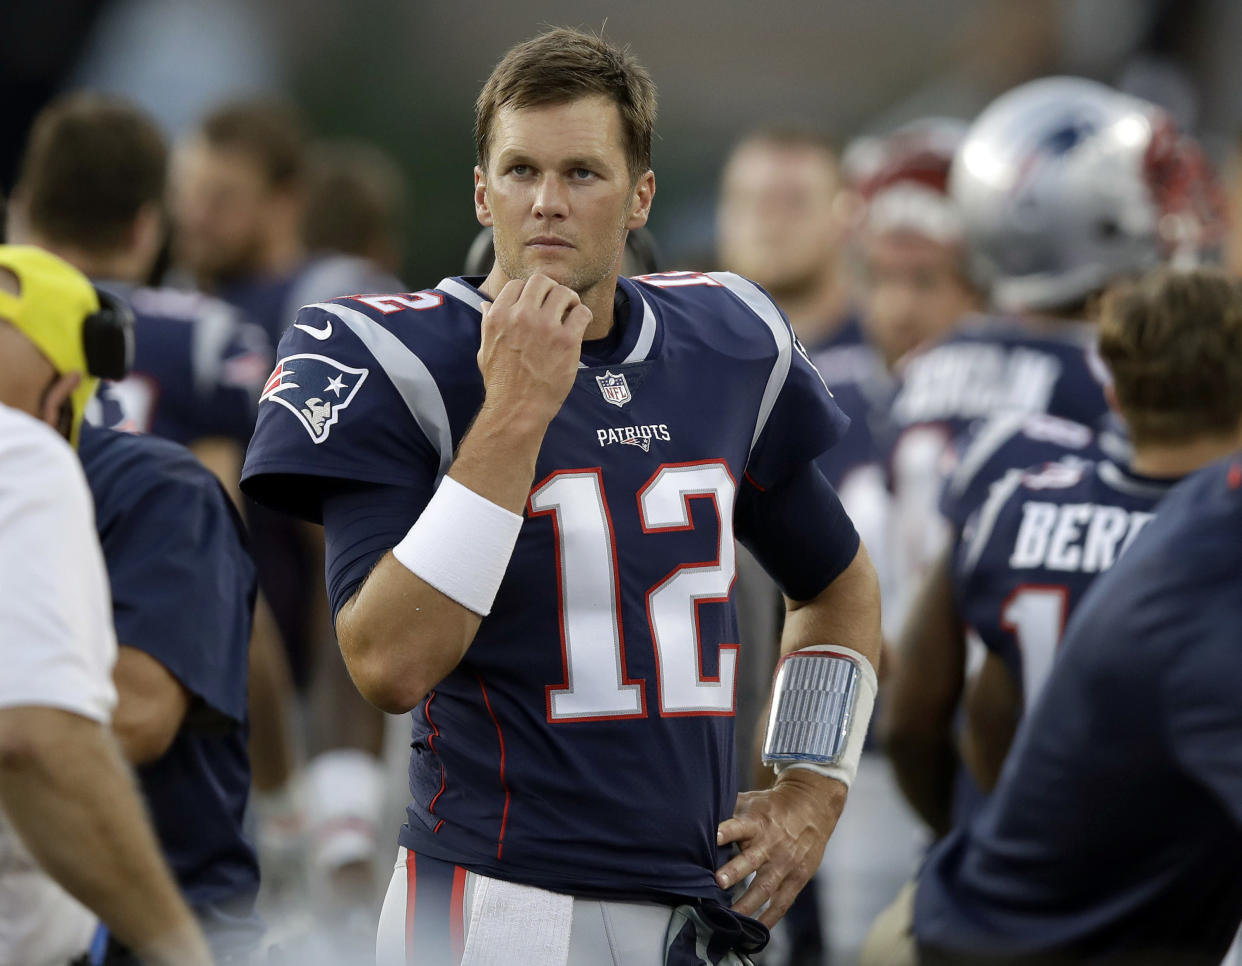 """<a class=""""link rapid-noclick-resp"""" href=""""/nfl/teams/nwe"""" data-ylk=""""slk:New England Patriots"""">New England Patriots</a> quarterback <a class=""""link rapid-noclick-resp"""" href=""""/nfl/players/5228/"""" data-ylk=""""slk:Tom Brady"""">Tom Brady</a> offered approval of the Colin Kaepernick Nike campaign. (AP)"""